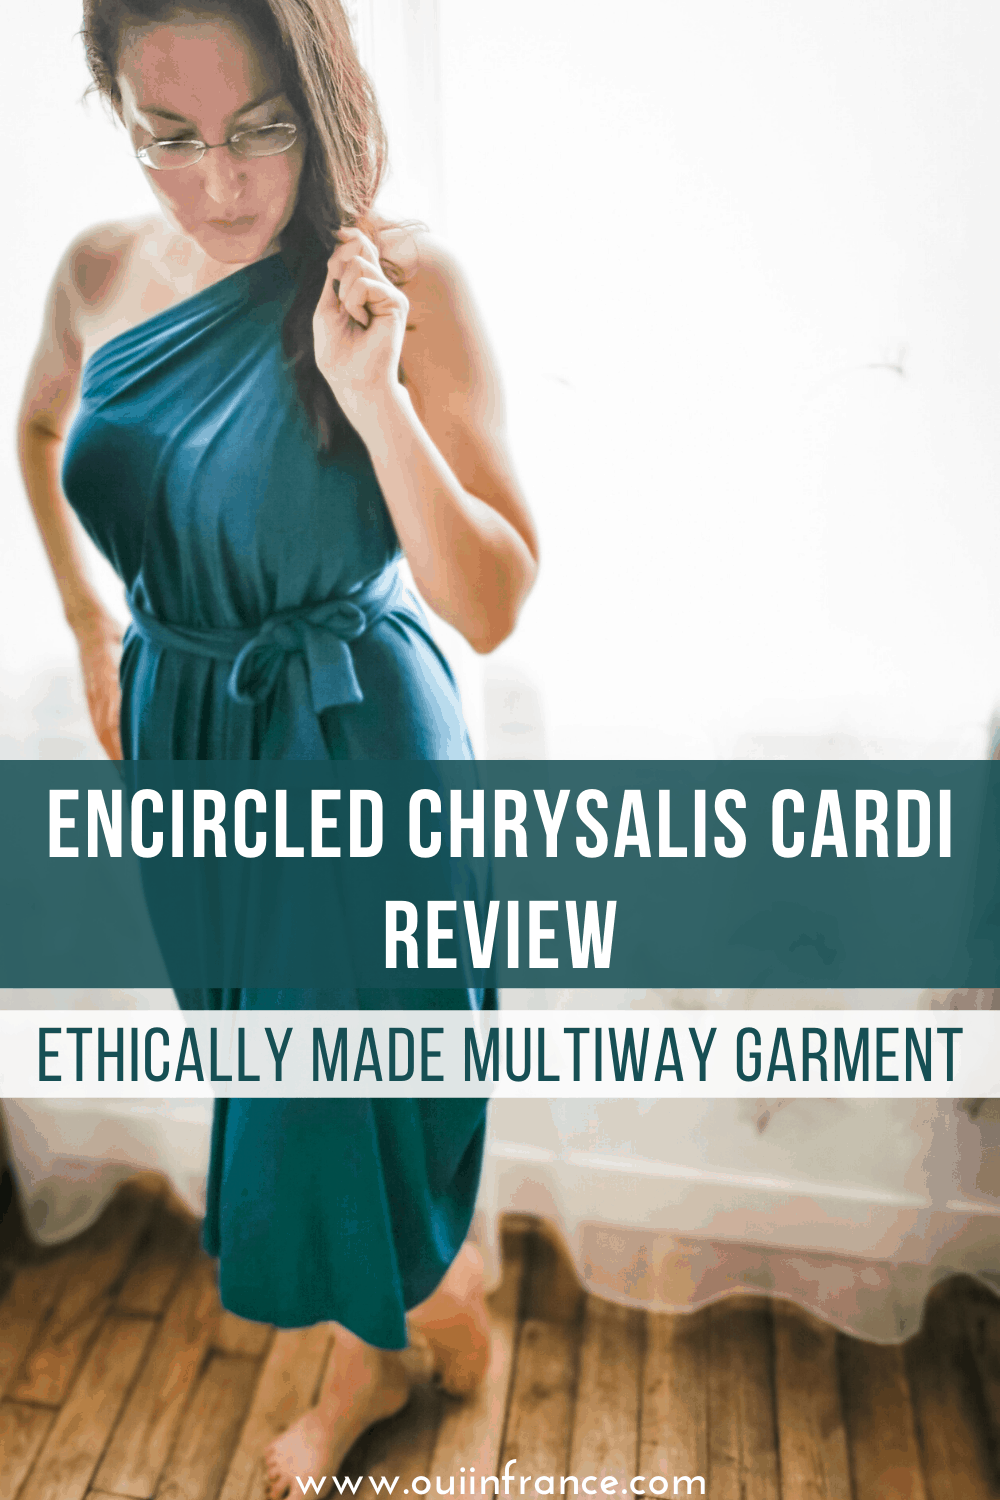 encircled chrysalis cardi review